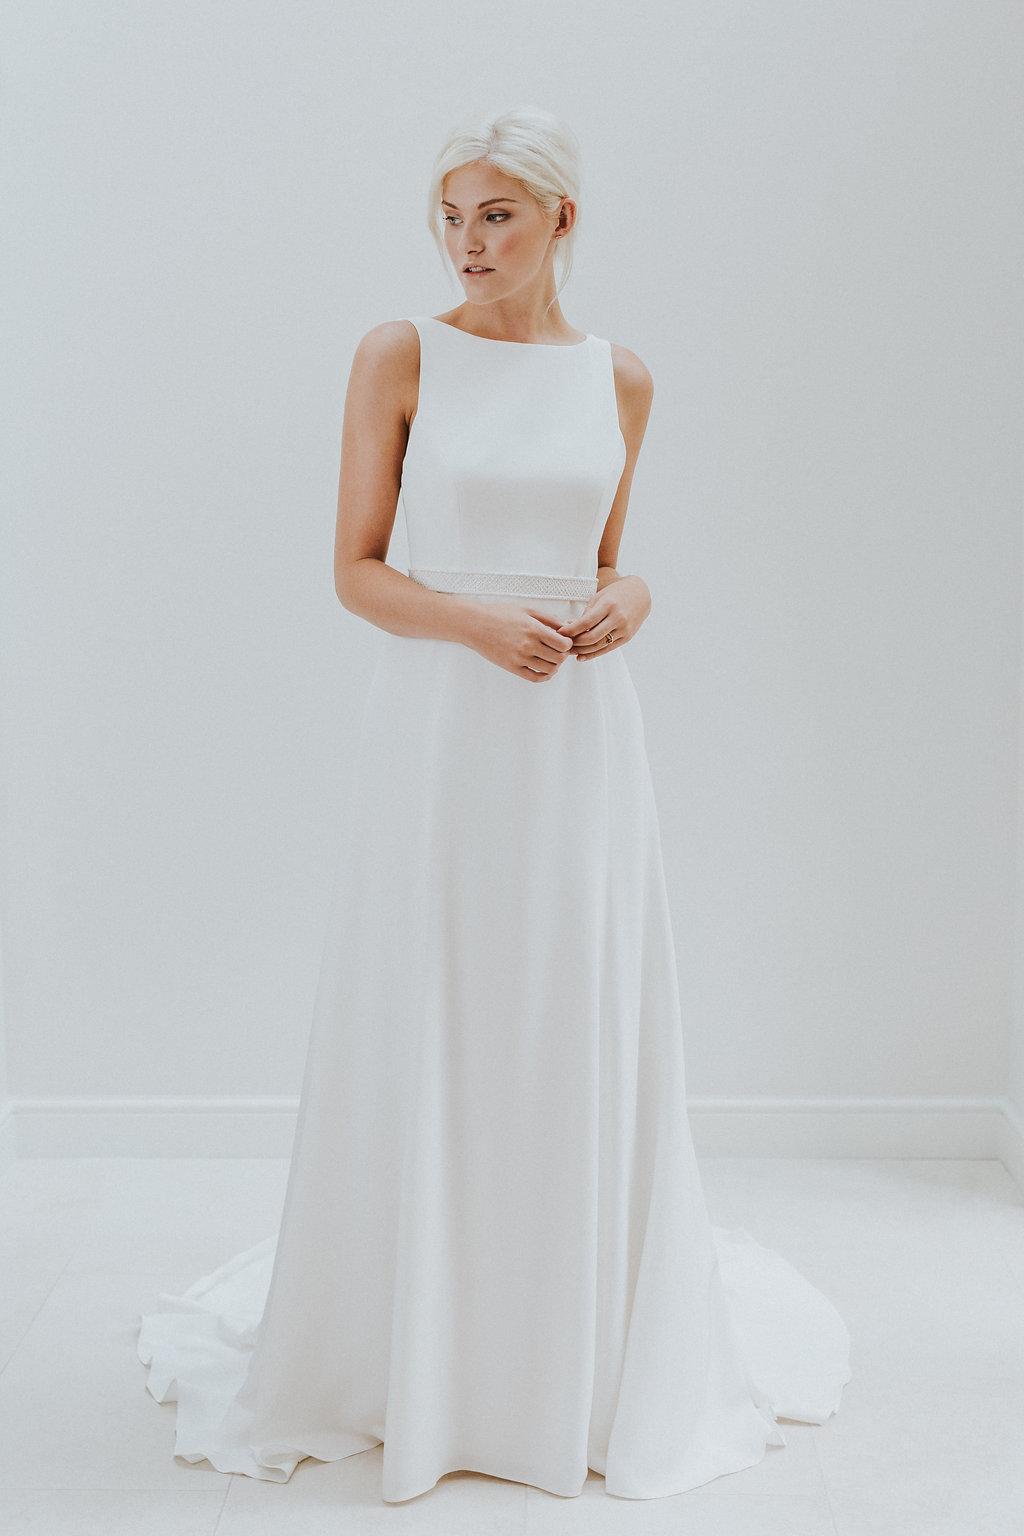 Charlotte Simpson Bridal | Made To Order Dresses | Bridal Collection ...